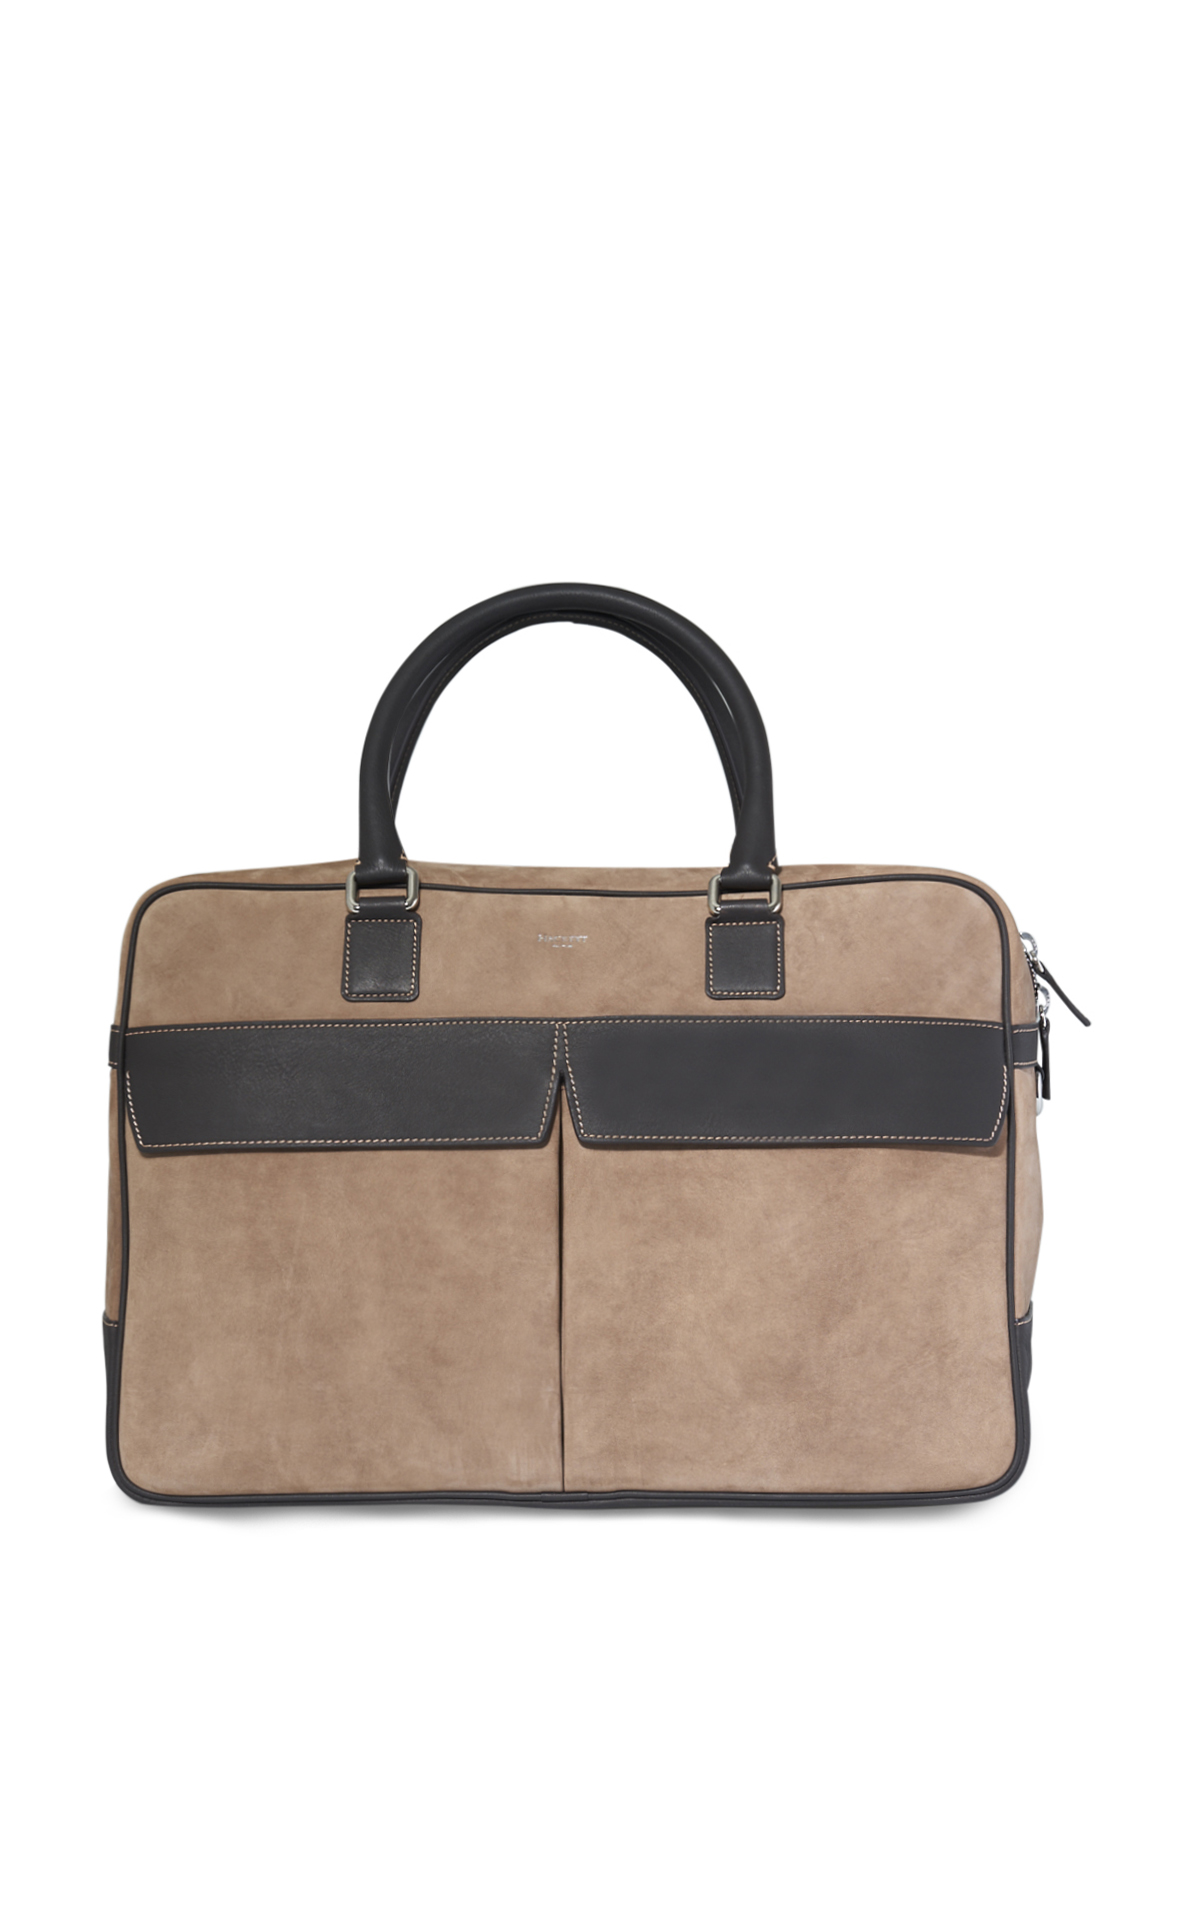 Hackett Sac beige et marron*